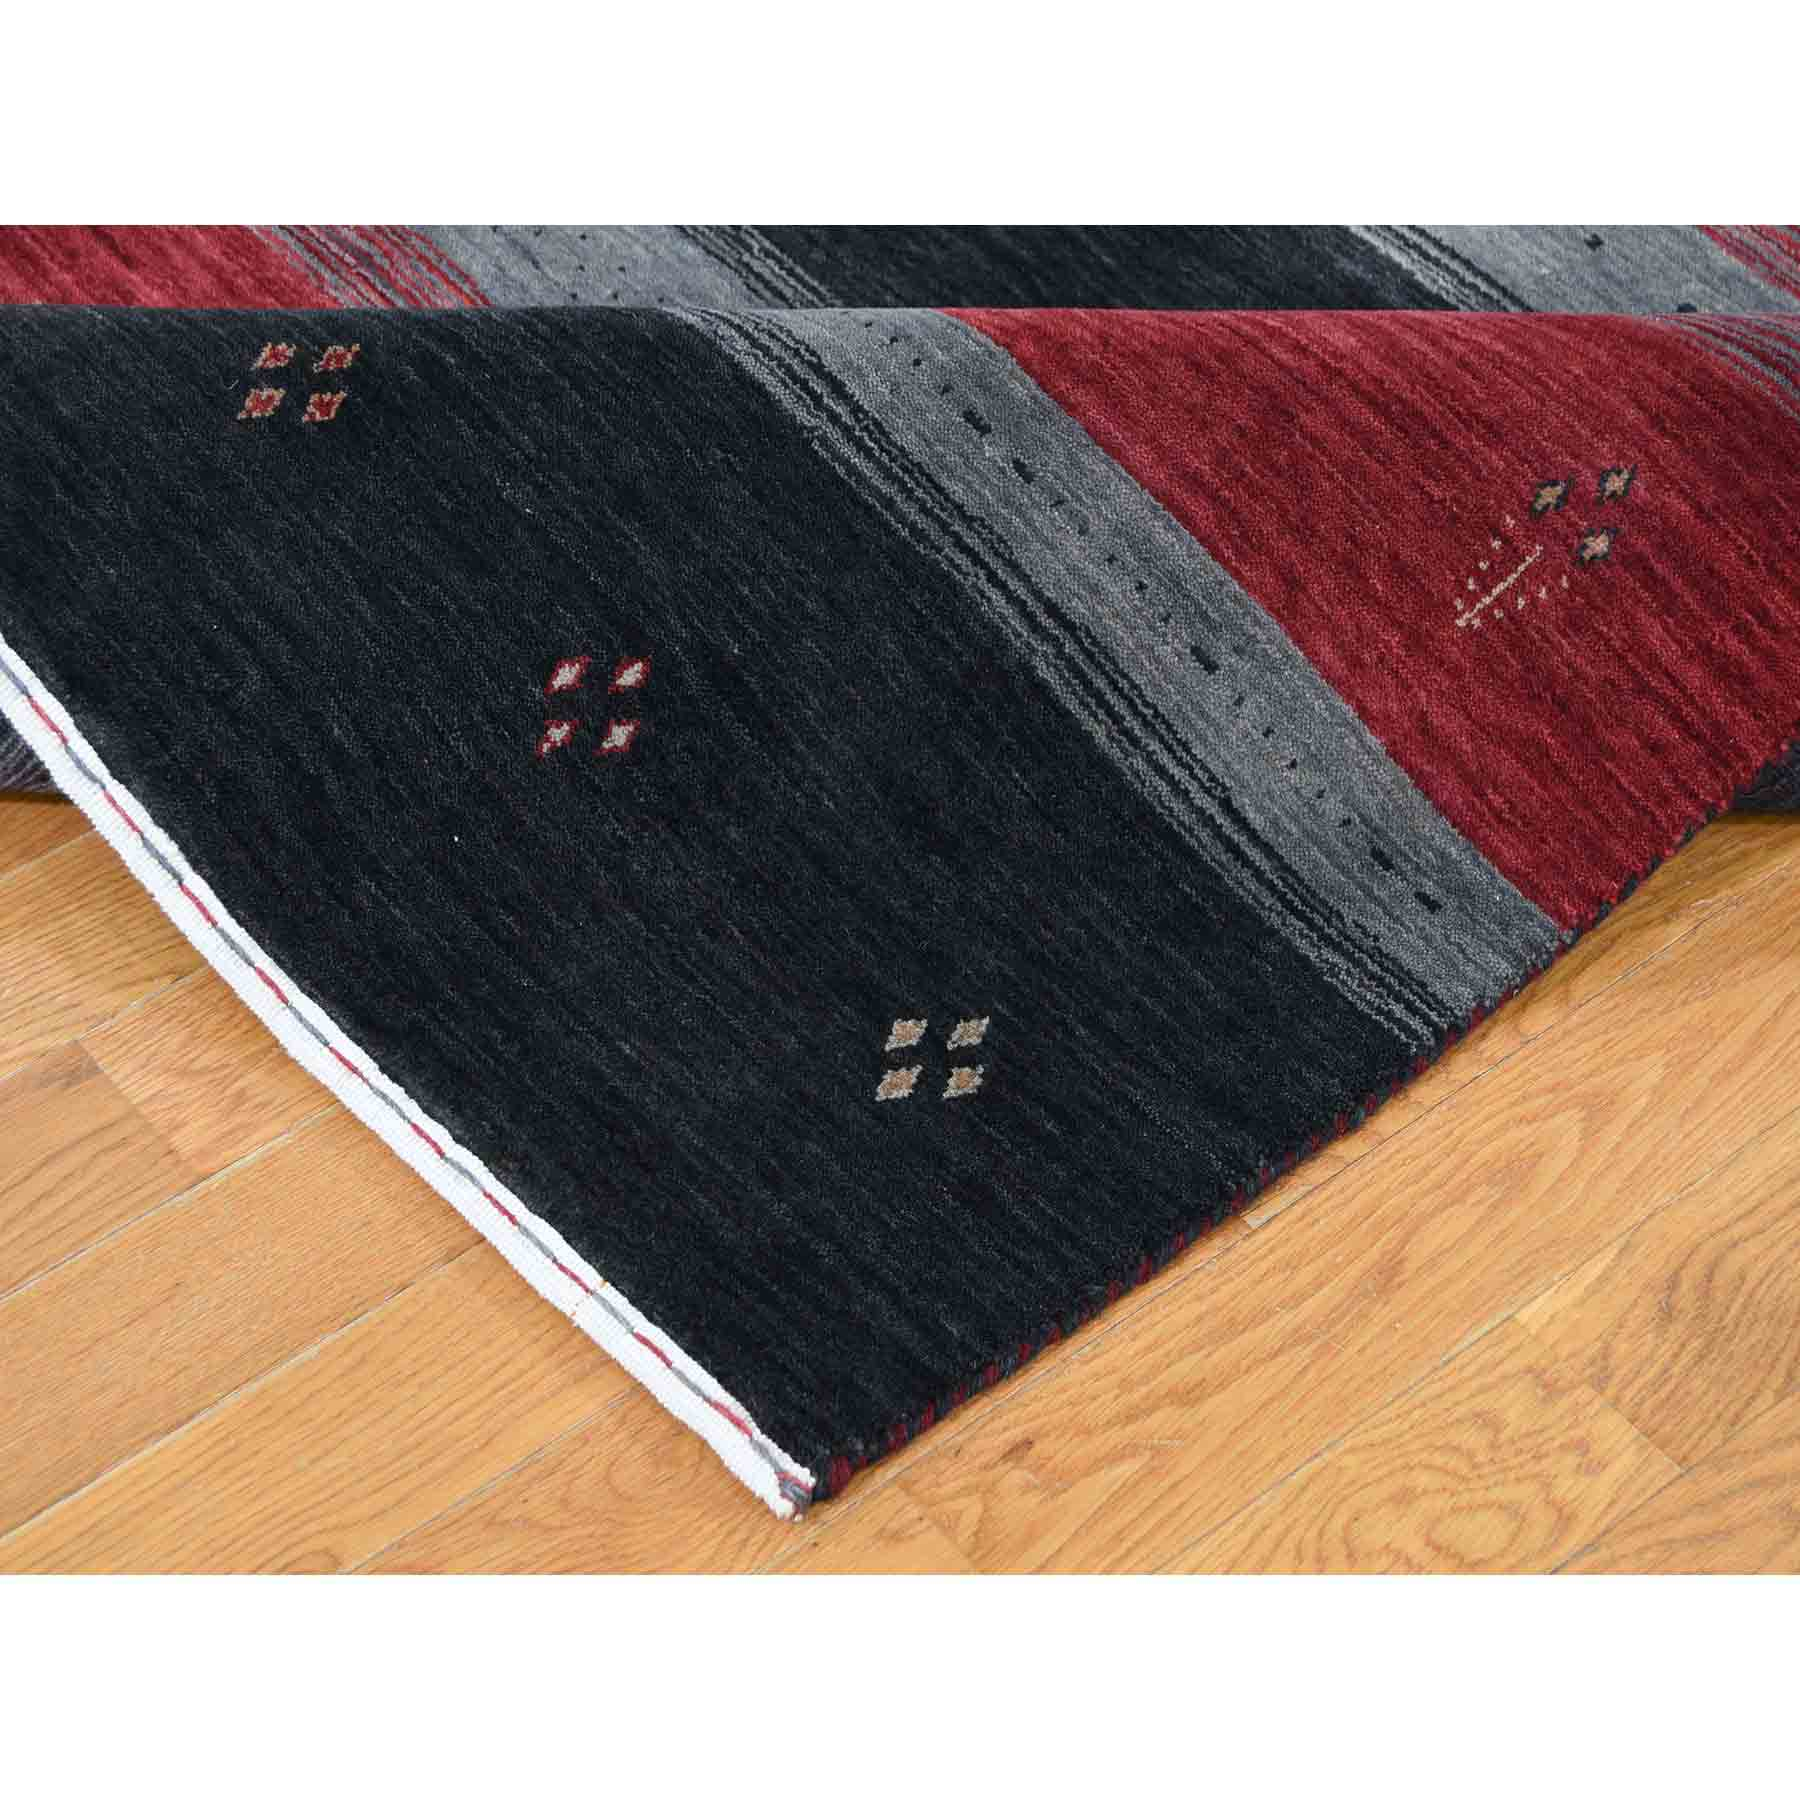 Modern-and-Contemporary-Hand-Loomed-Rug-230130